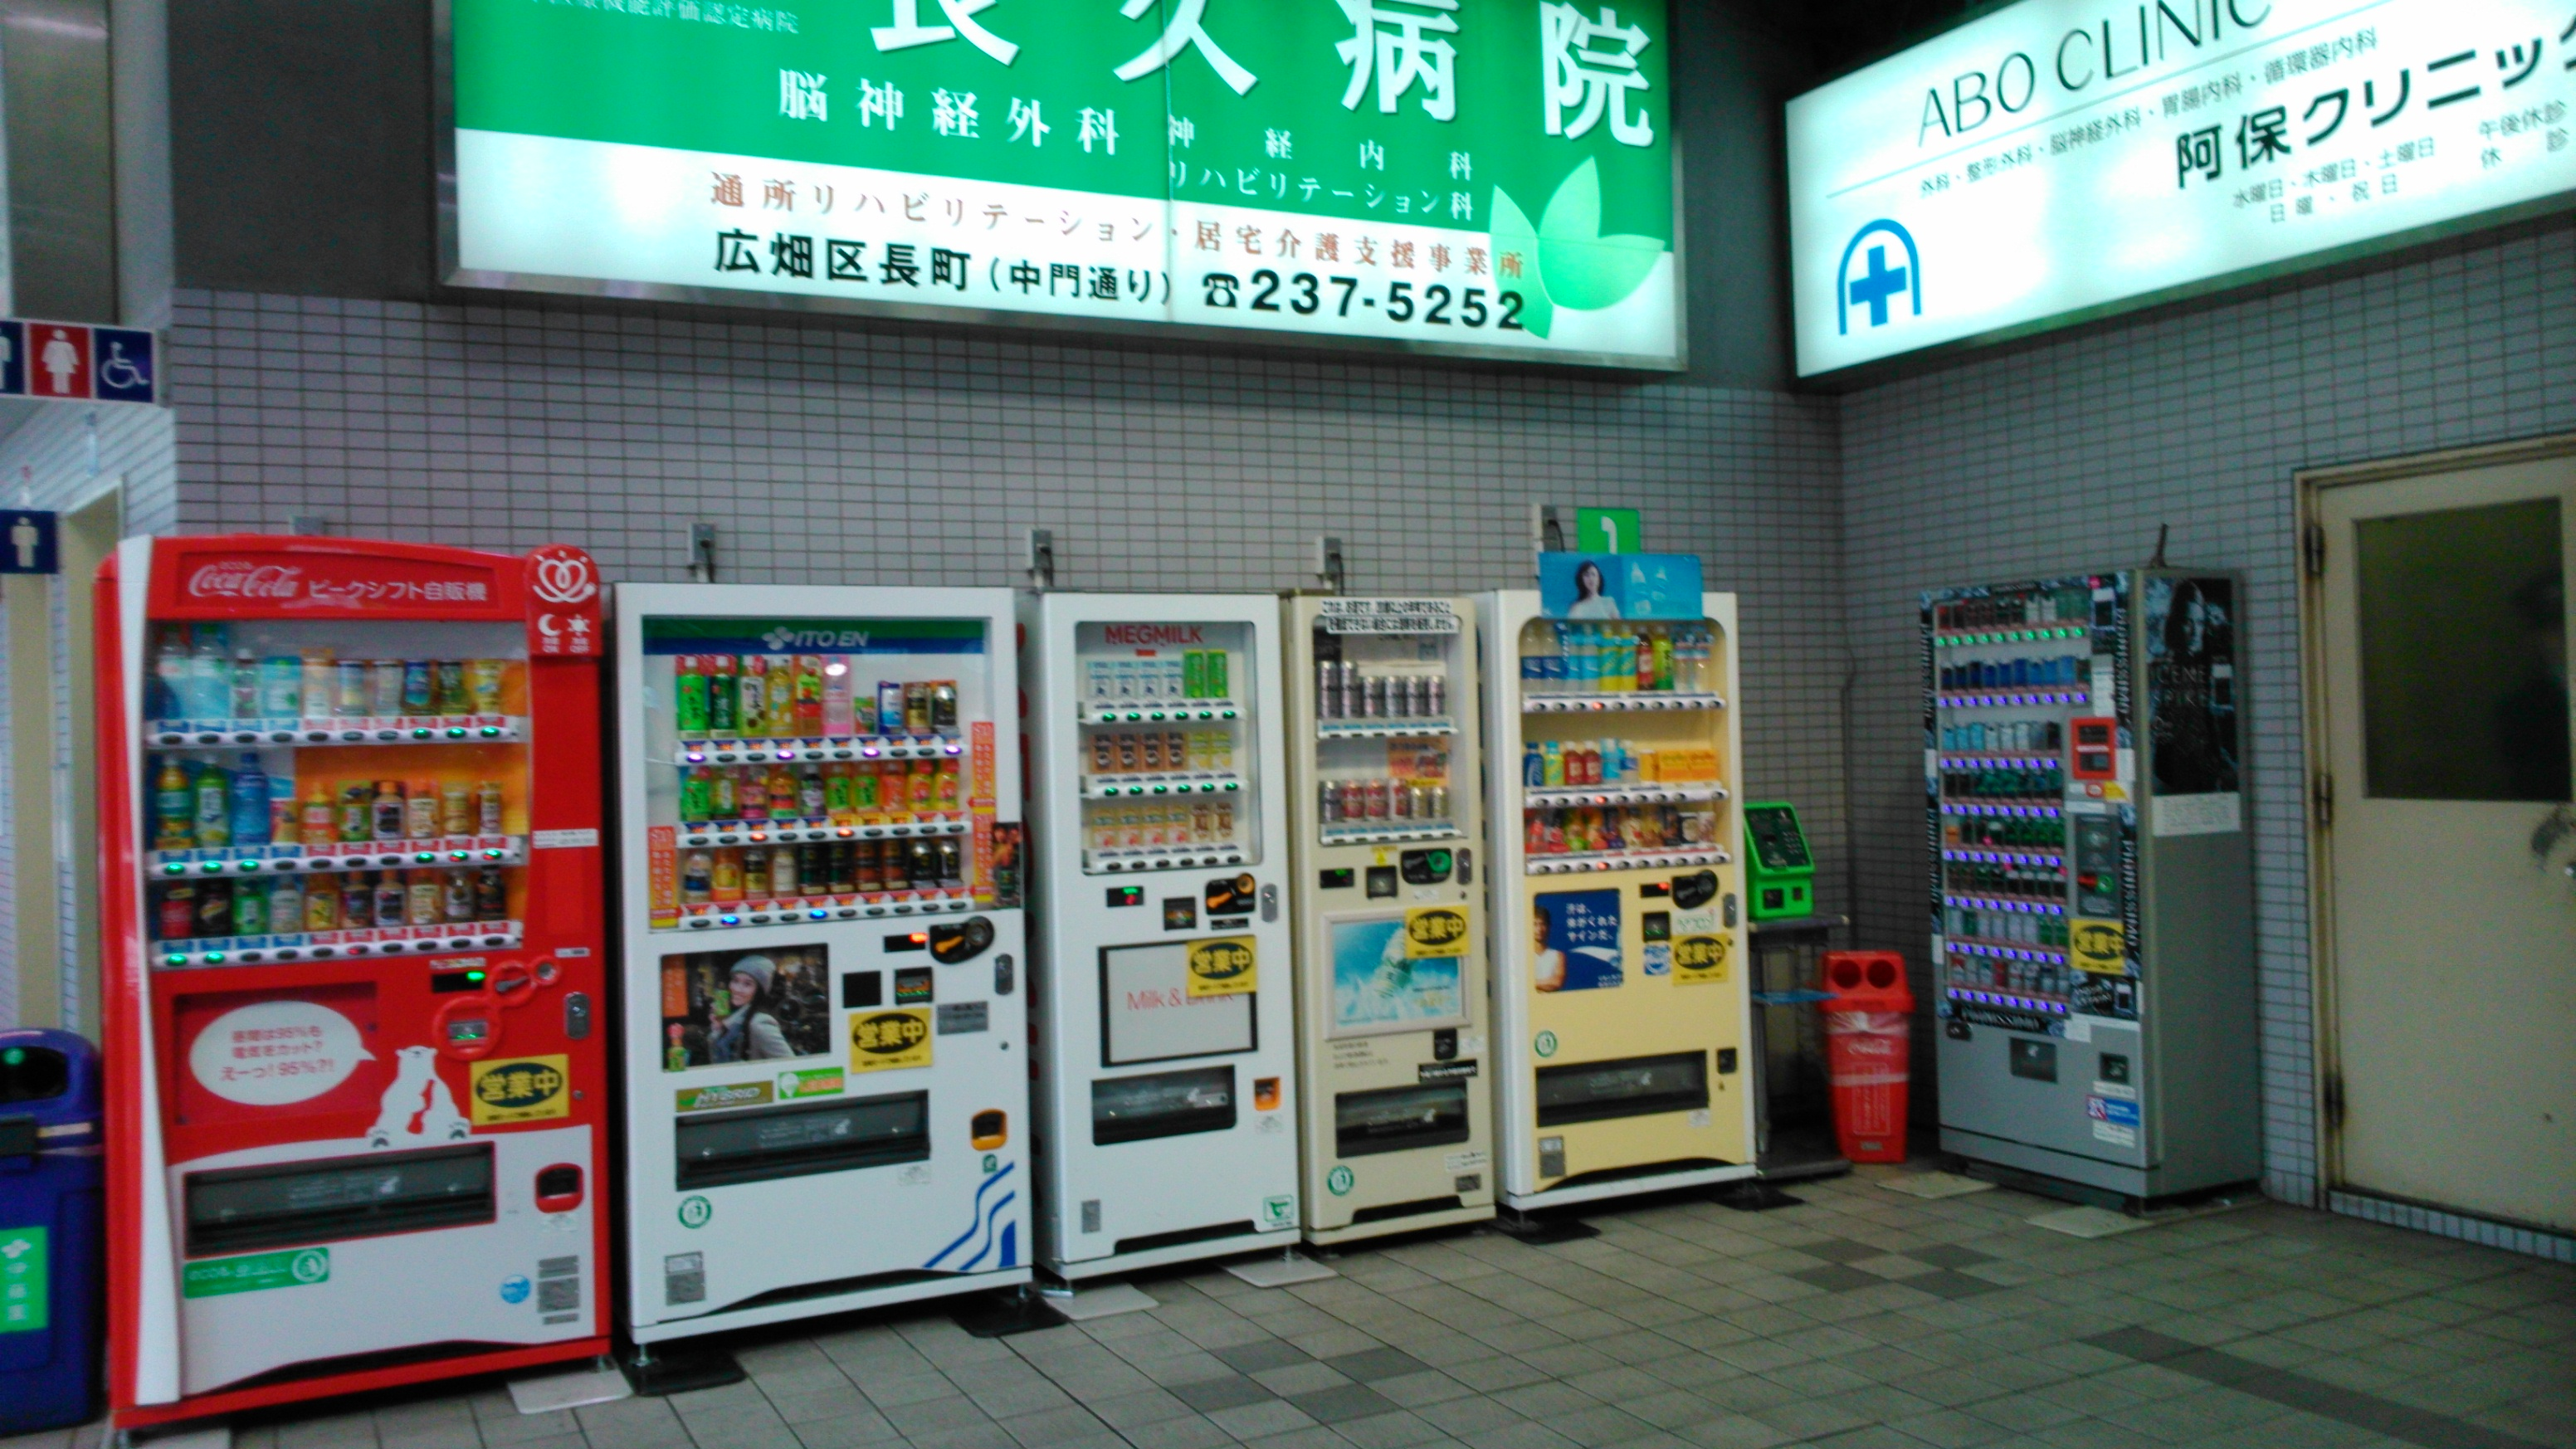 Vending machines with recycling bins